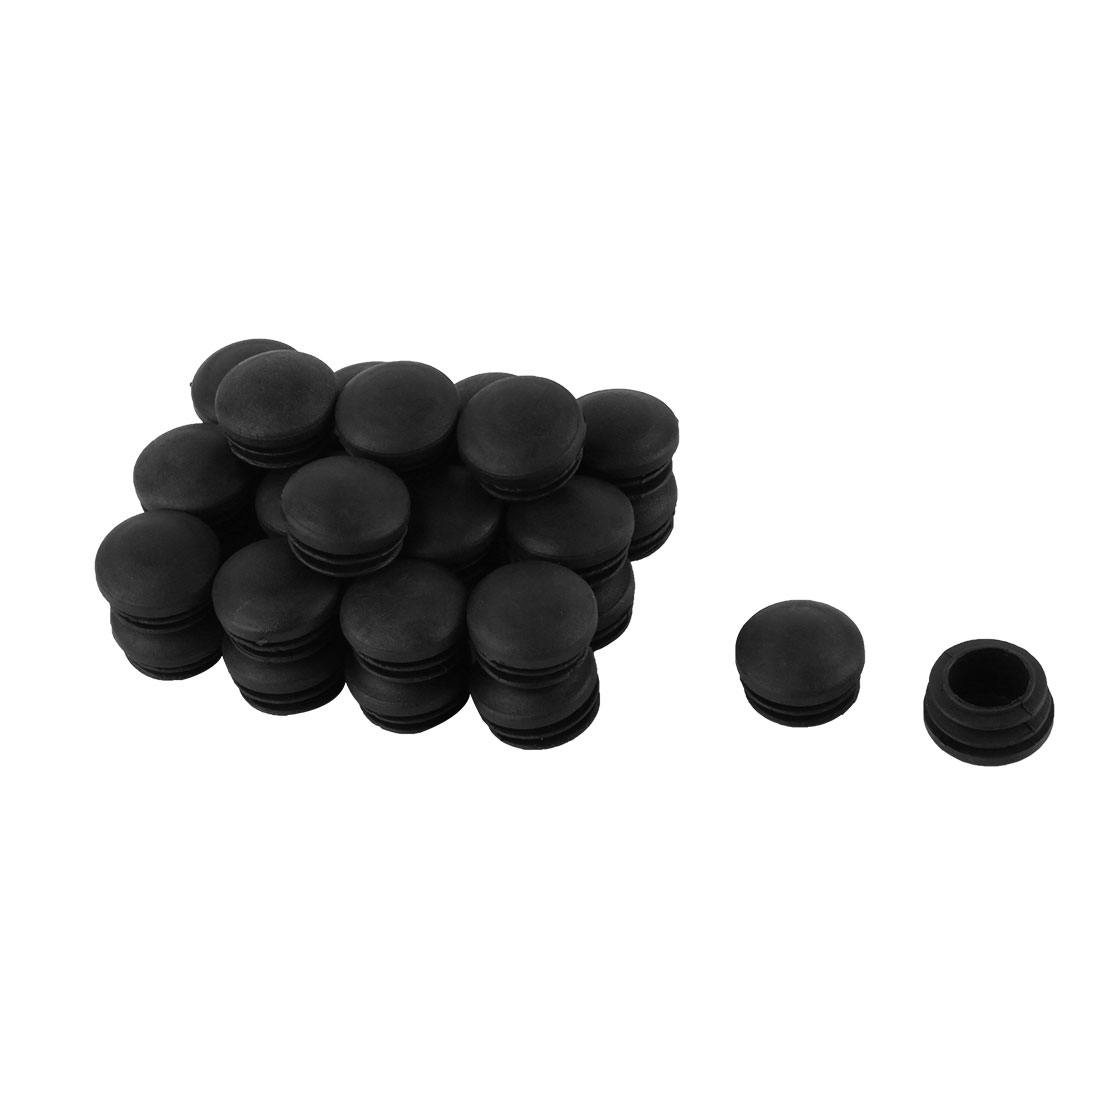 Plastic Blanking End Tube Caps Cover Inserts 25mm Dia Black 30pcs